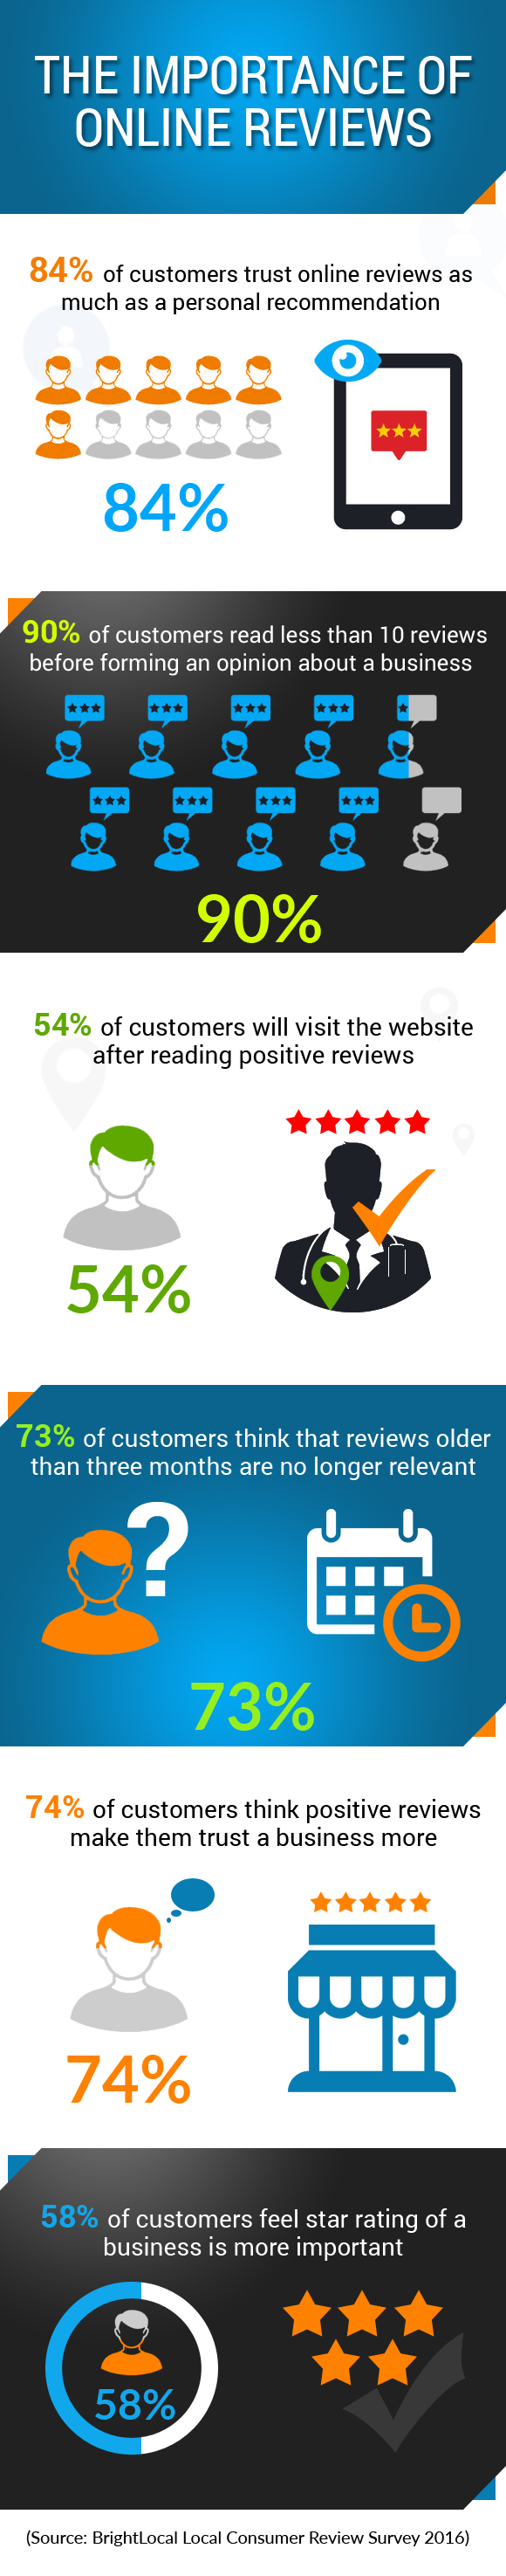 Google Local Search Update: Why Online Reviews Matter for Your Practice